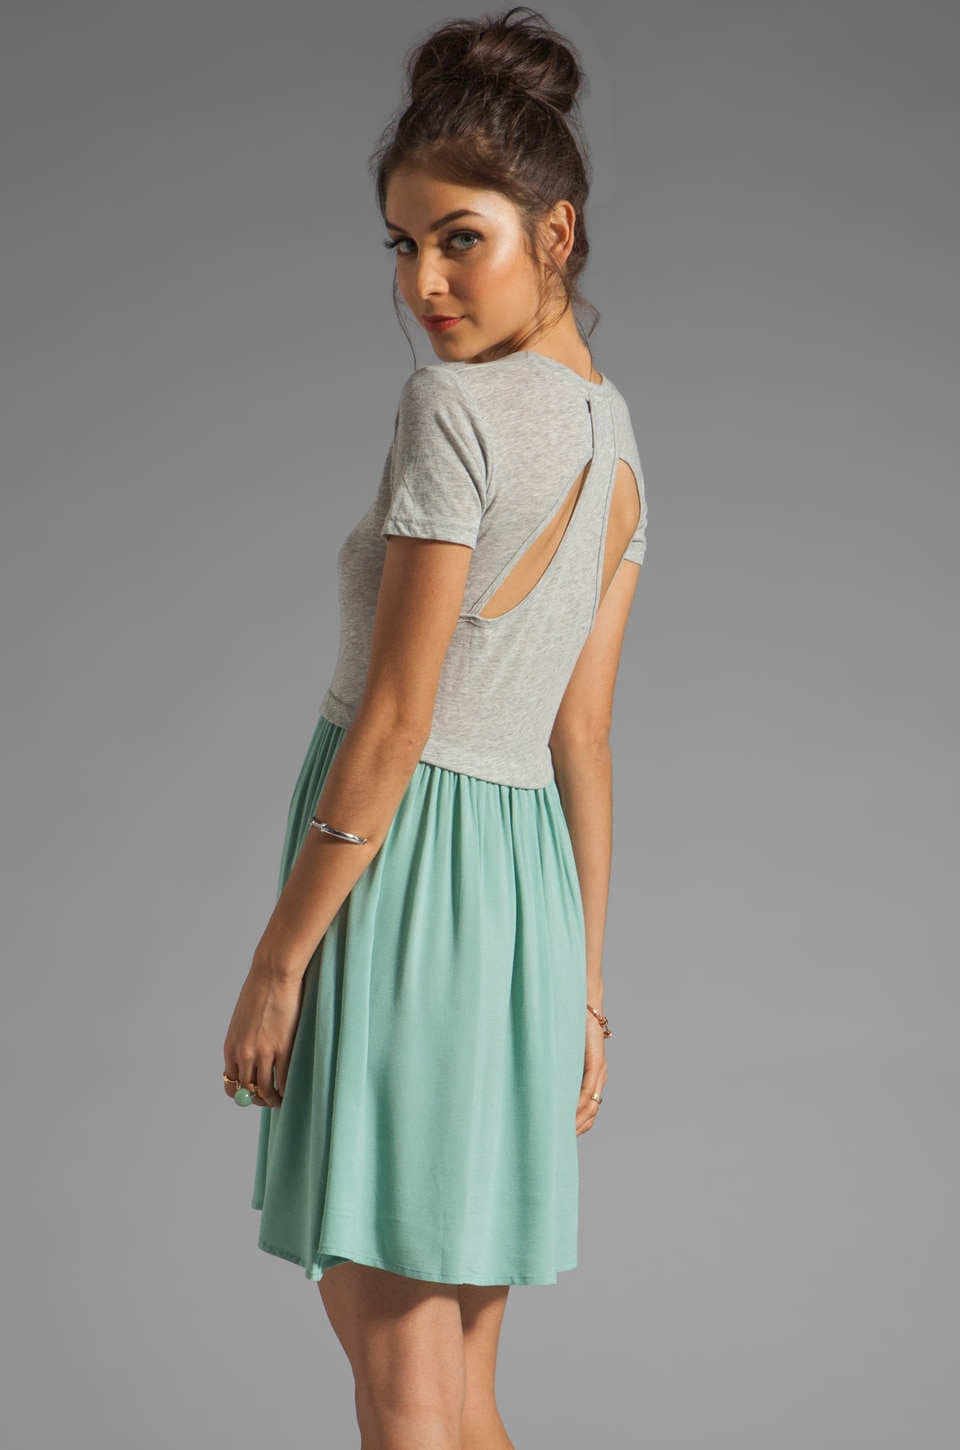 Funktional Path Back Detail Dress in Sage Path